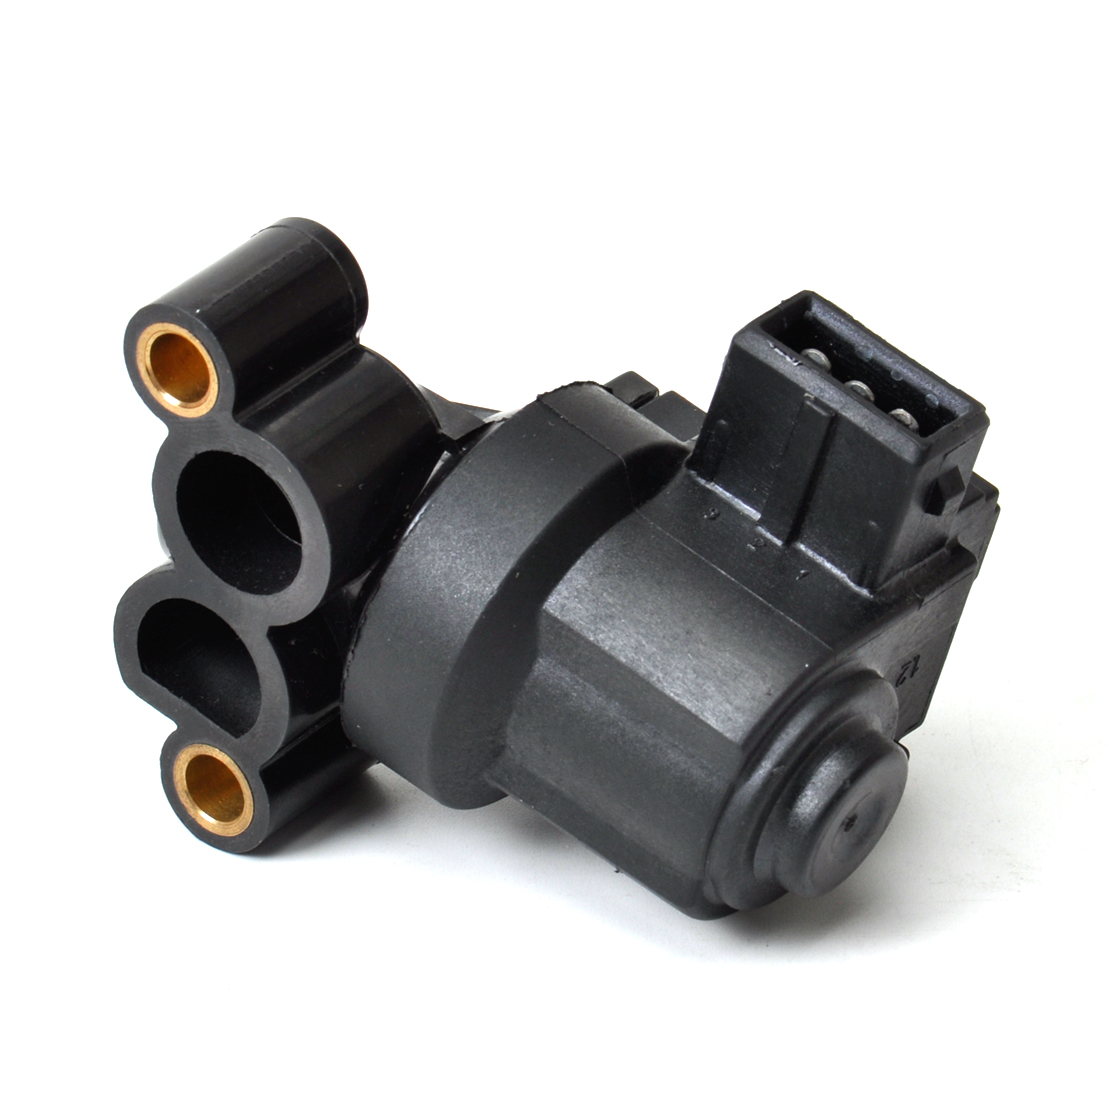 Idle Air Control Valve For Hyundai Sonata Tiburon Kia: DWCX 3515033010280140571 Idle Air Control Valve For